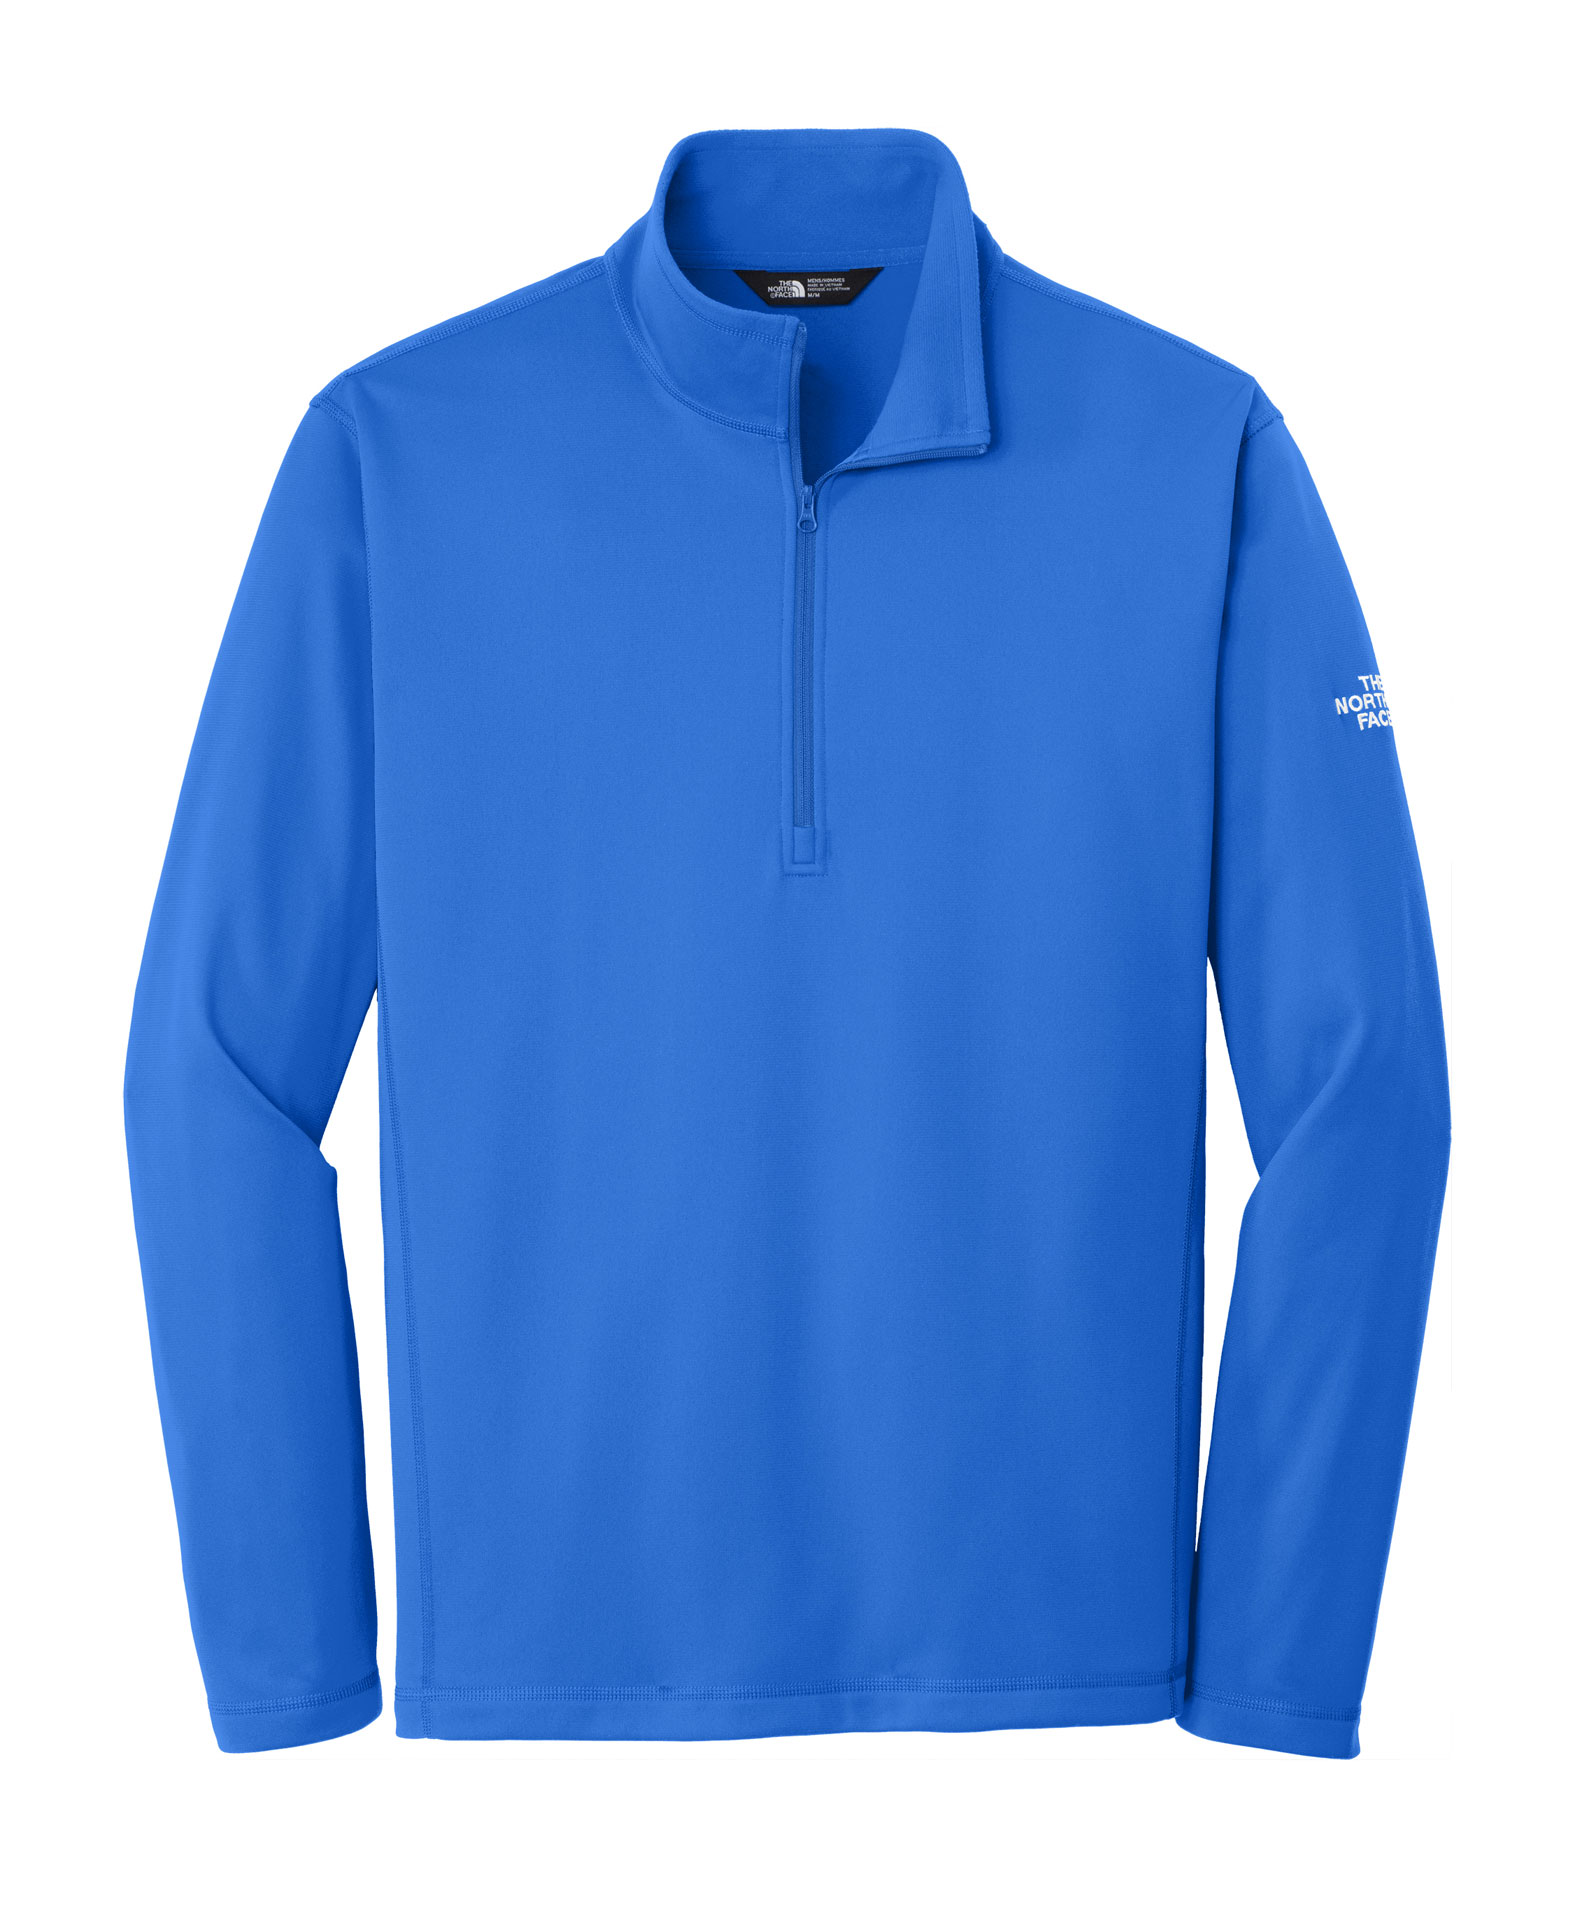 The North Face® Mens Tech Fleece 1/4 Zip Fleece Pullover